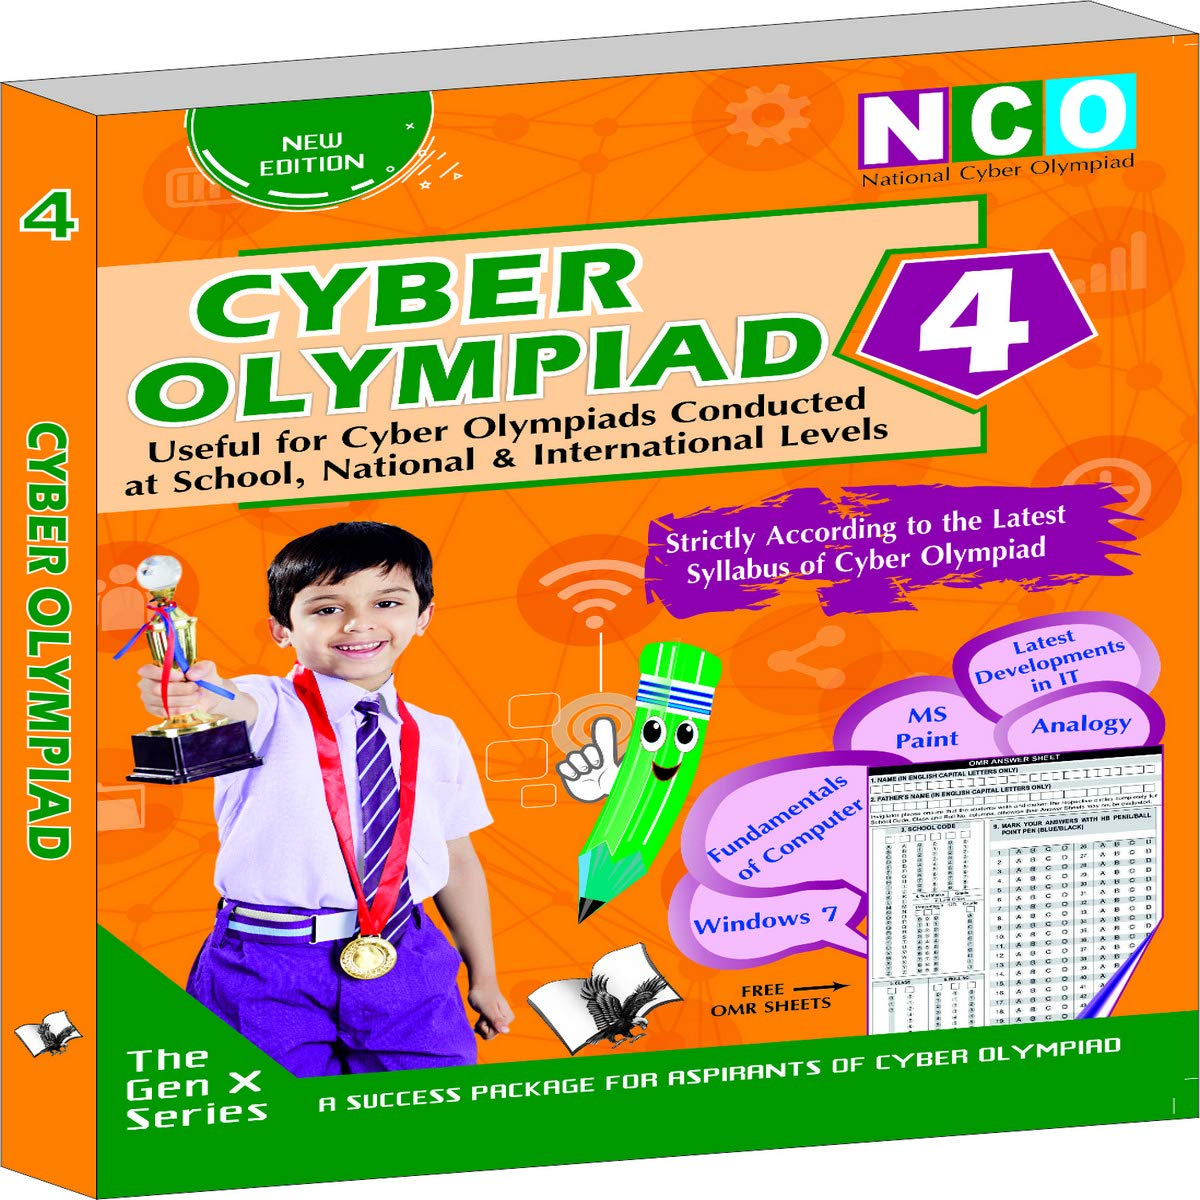 CYBER OLYMPIAD 4 (USEFUL FOR CYBER OLYMPIADS CONDUCTED AT SCHOOL, NATIONAL & INTERNATIONAL LEVELS)